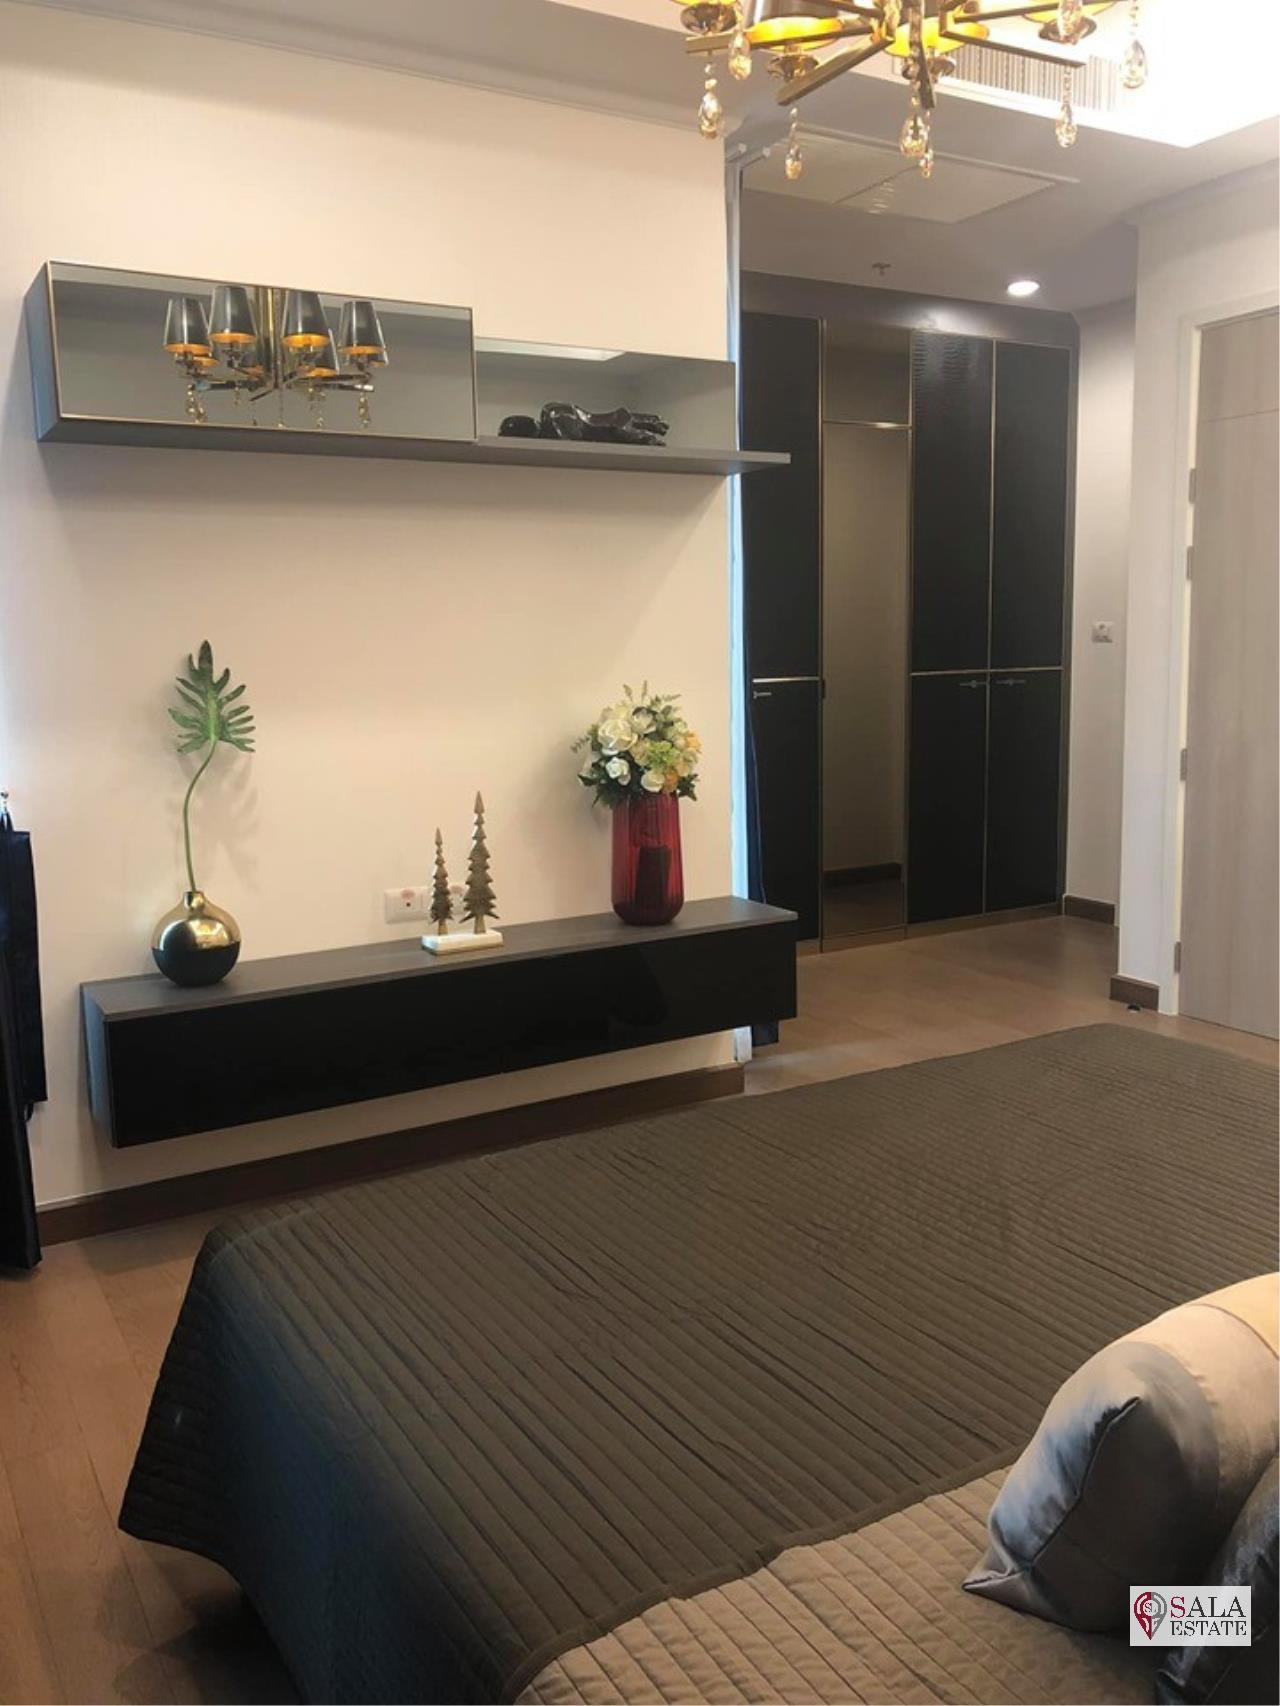 SALA ESTATE Agency's (FOR RENT) SUPALAI ELITE PHAYATHAI – BTS PHAYA THAI,70 SQM 1 BEDROOM 1 BATHROOM, FULLY FERNISHED, CITY VIEW 13